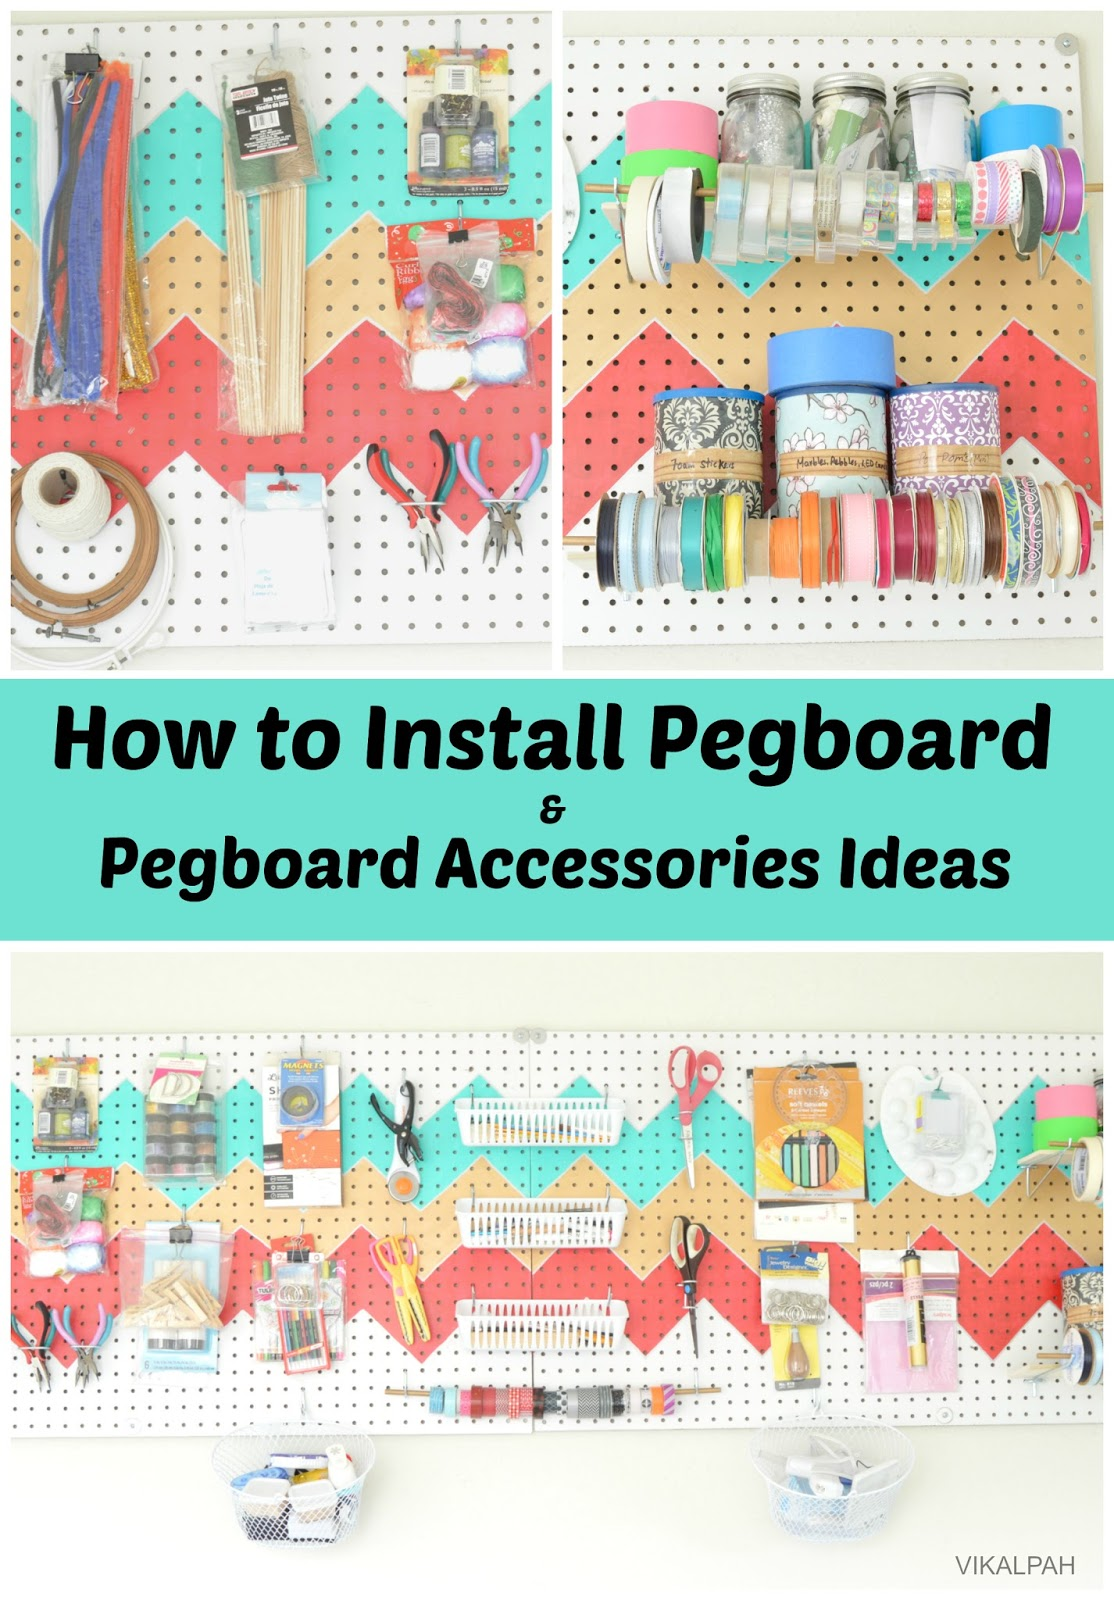 vikalpah how to install pegboard and pegboard organizing ideas. Black Bedroom Furniture Sets. Home Design Ideas